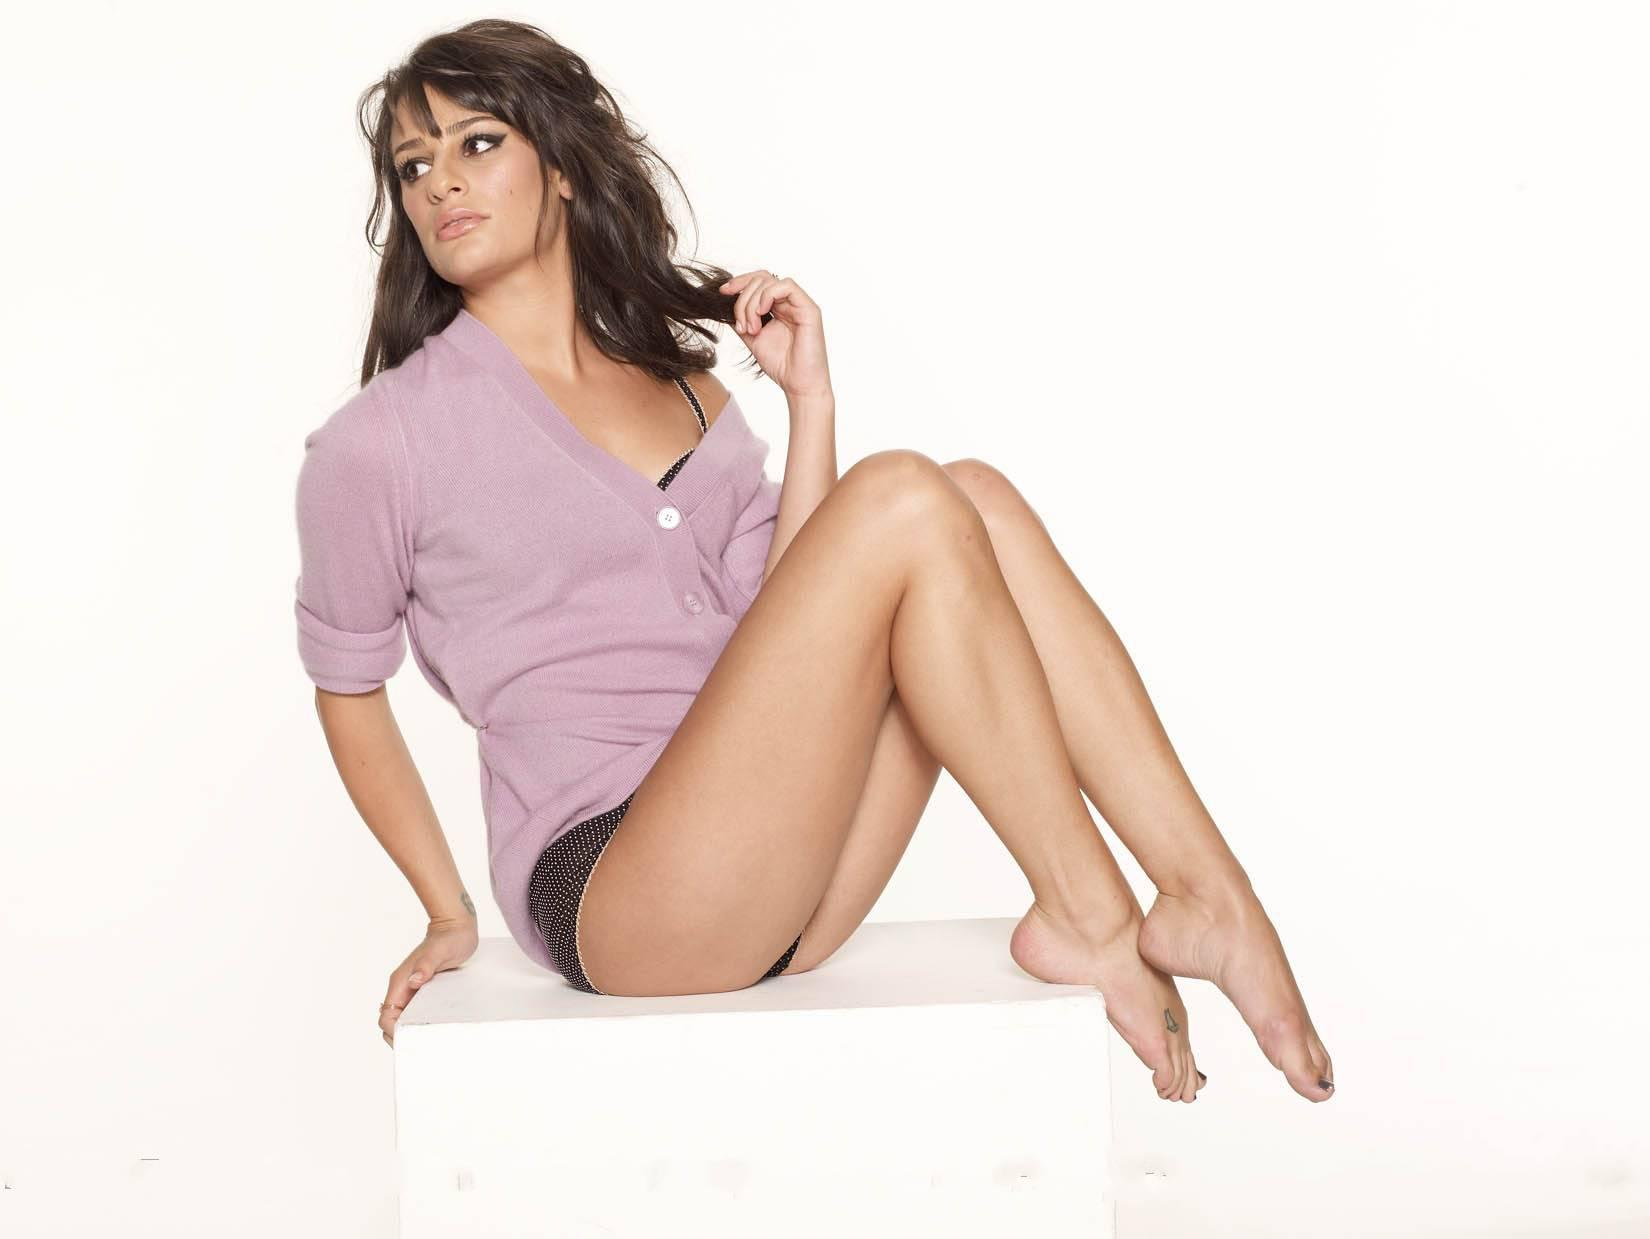 Lea Michele Widescreen for desktop